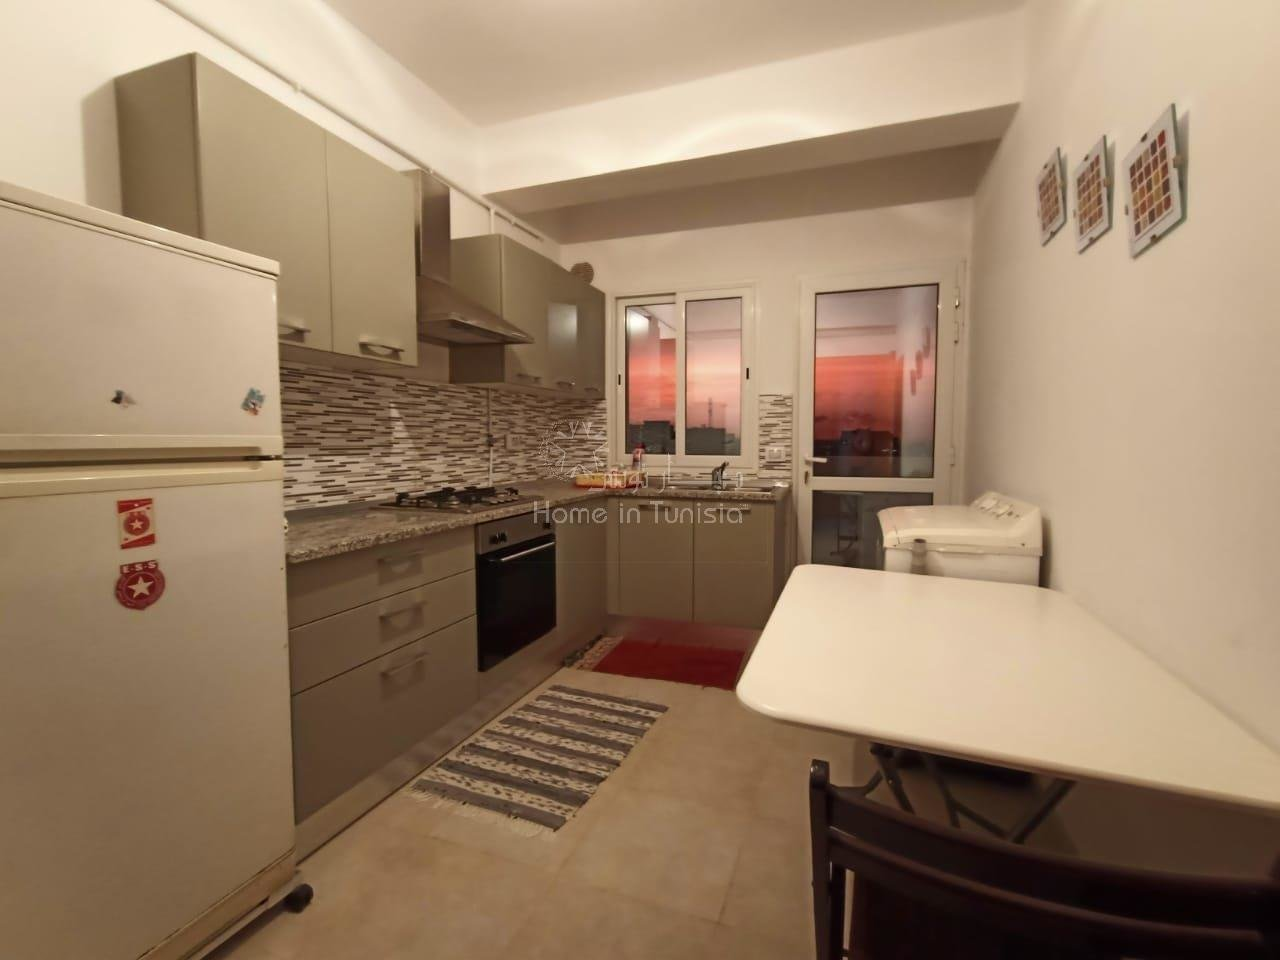 location annuelle d'un appartement S+2